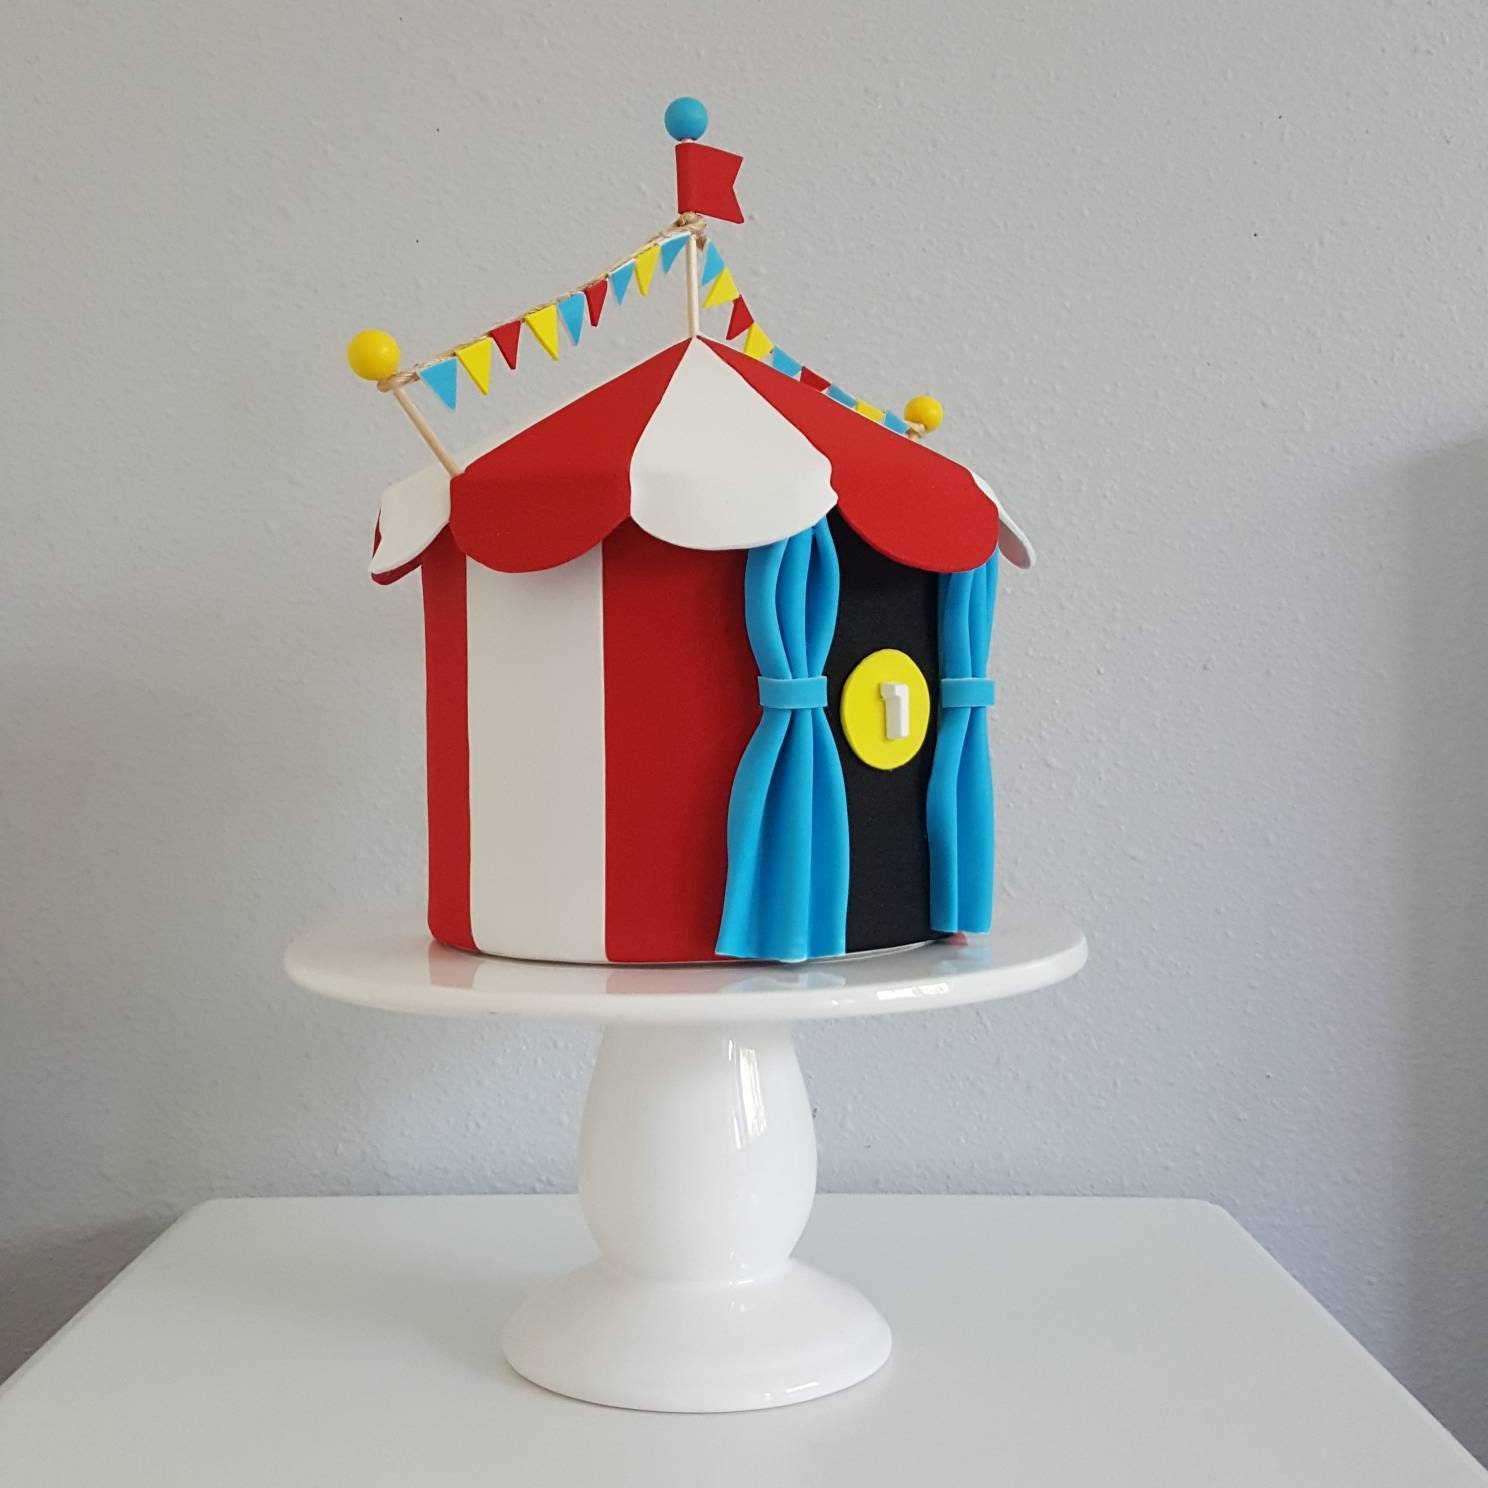 & Circus carnival tent cake topper/ centerpiece